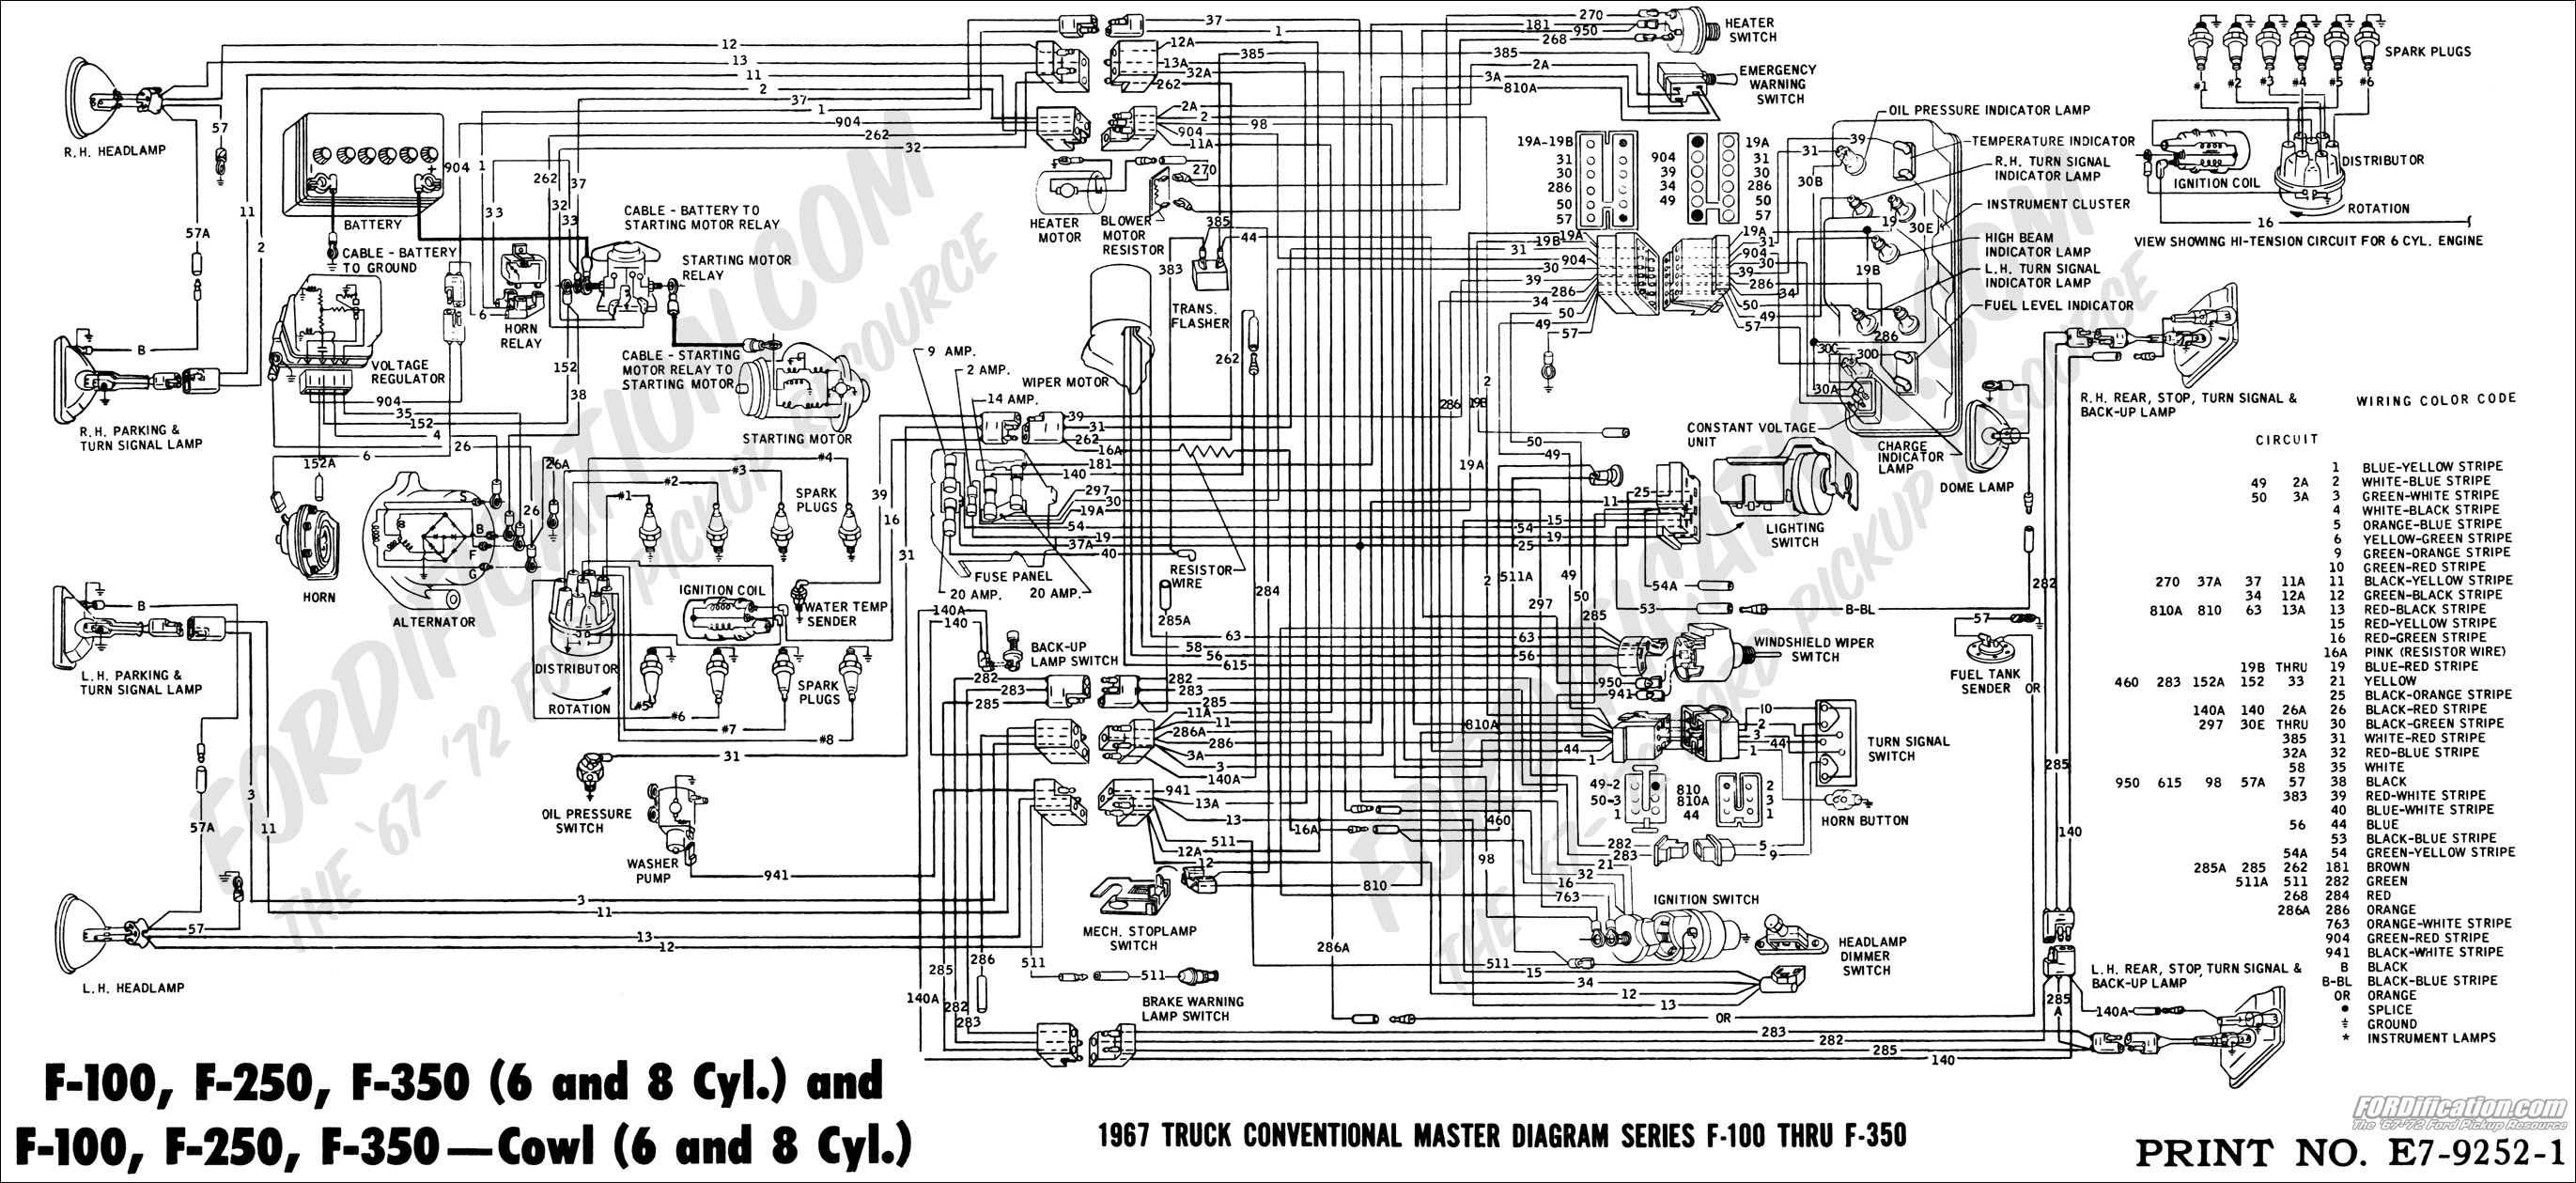 2001 f250 wiring diagram experts of wiring diagram u2022 rh evilcloud co uk 2001  ford f150